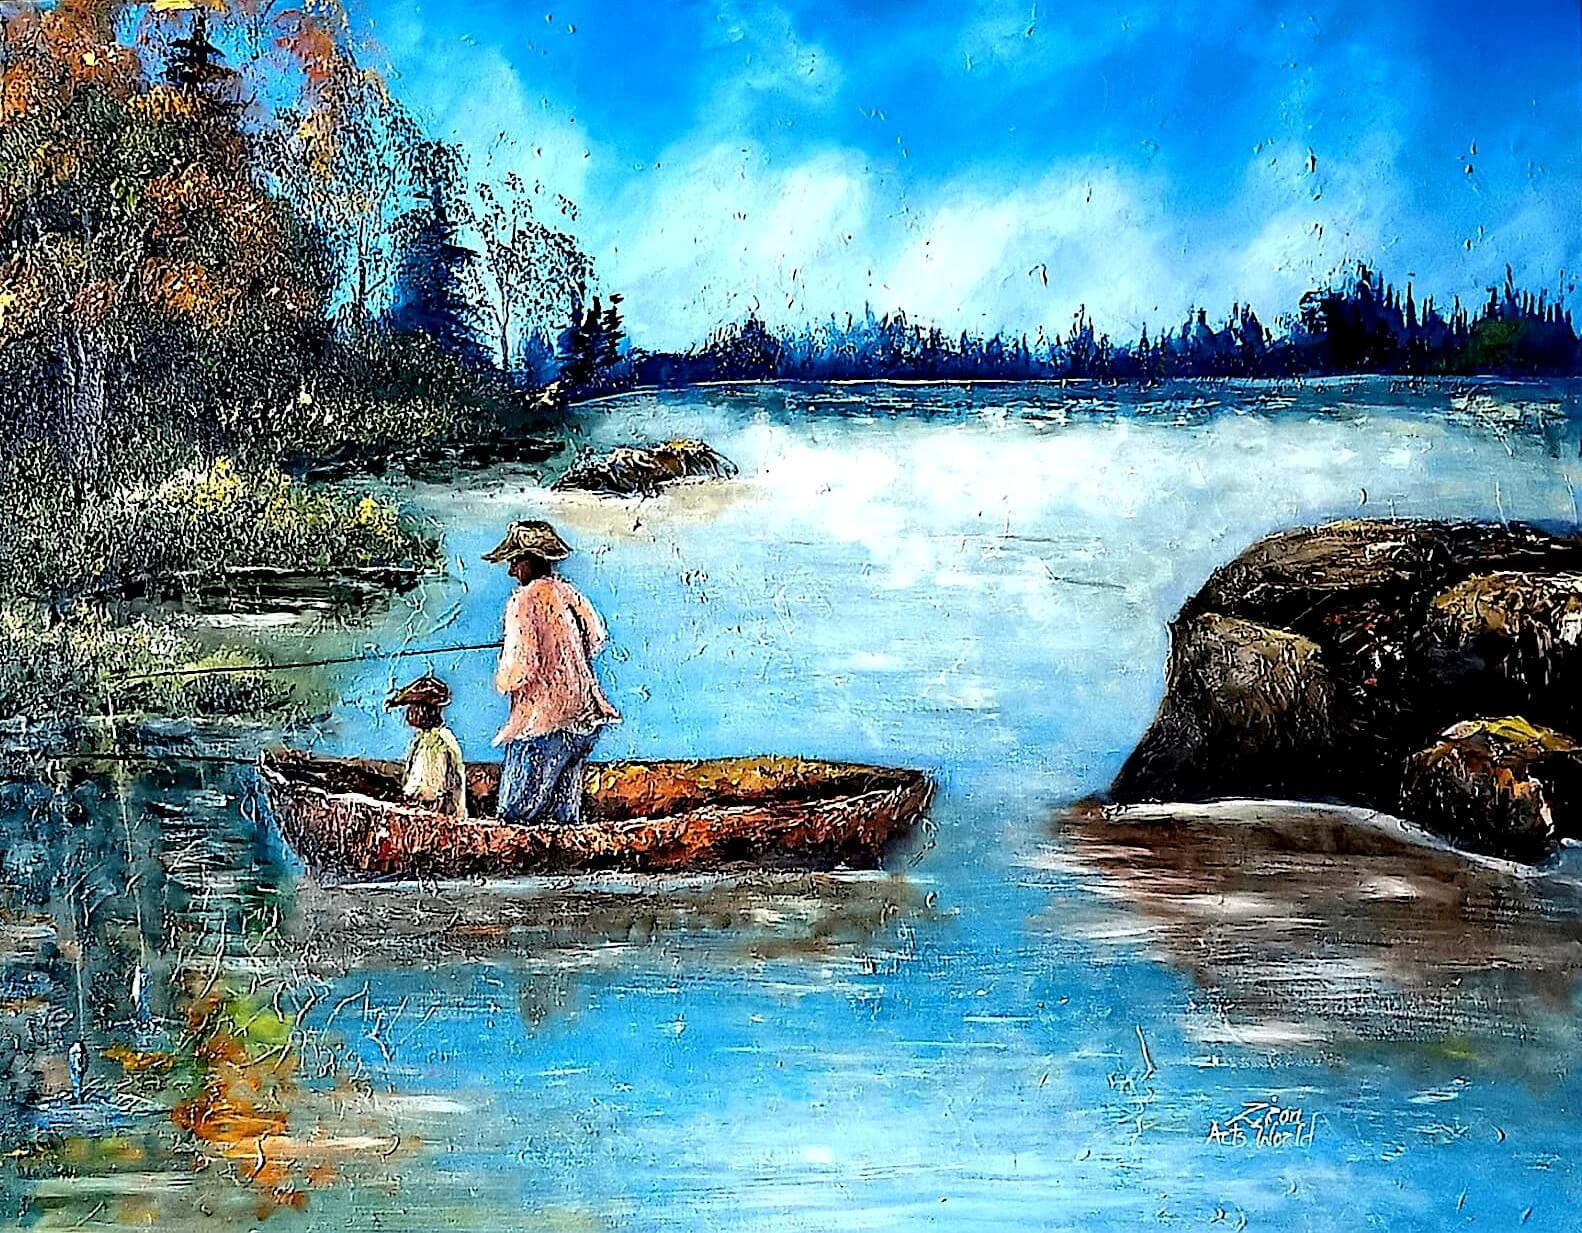 Father and Son Fishing in River Original Painting on Canvas